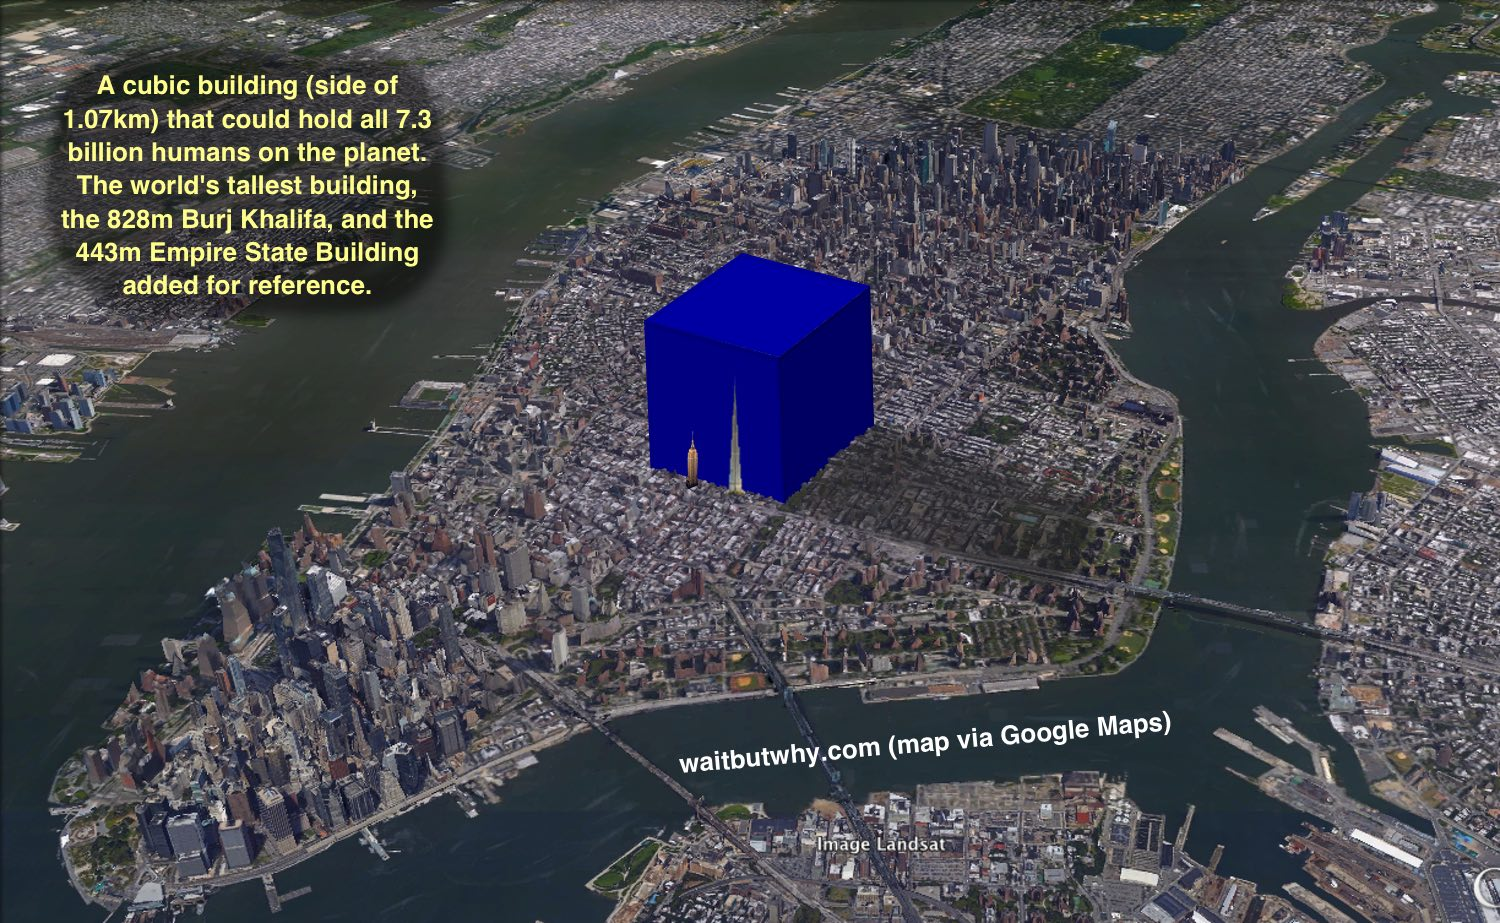 This cube superimposed over a map of Manhattan could hold all humans on the planet